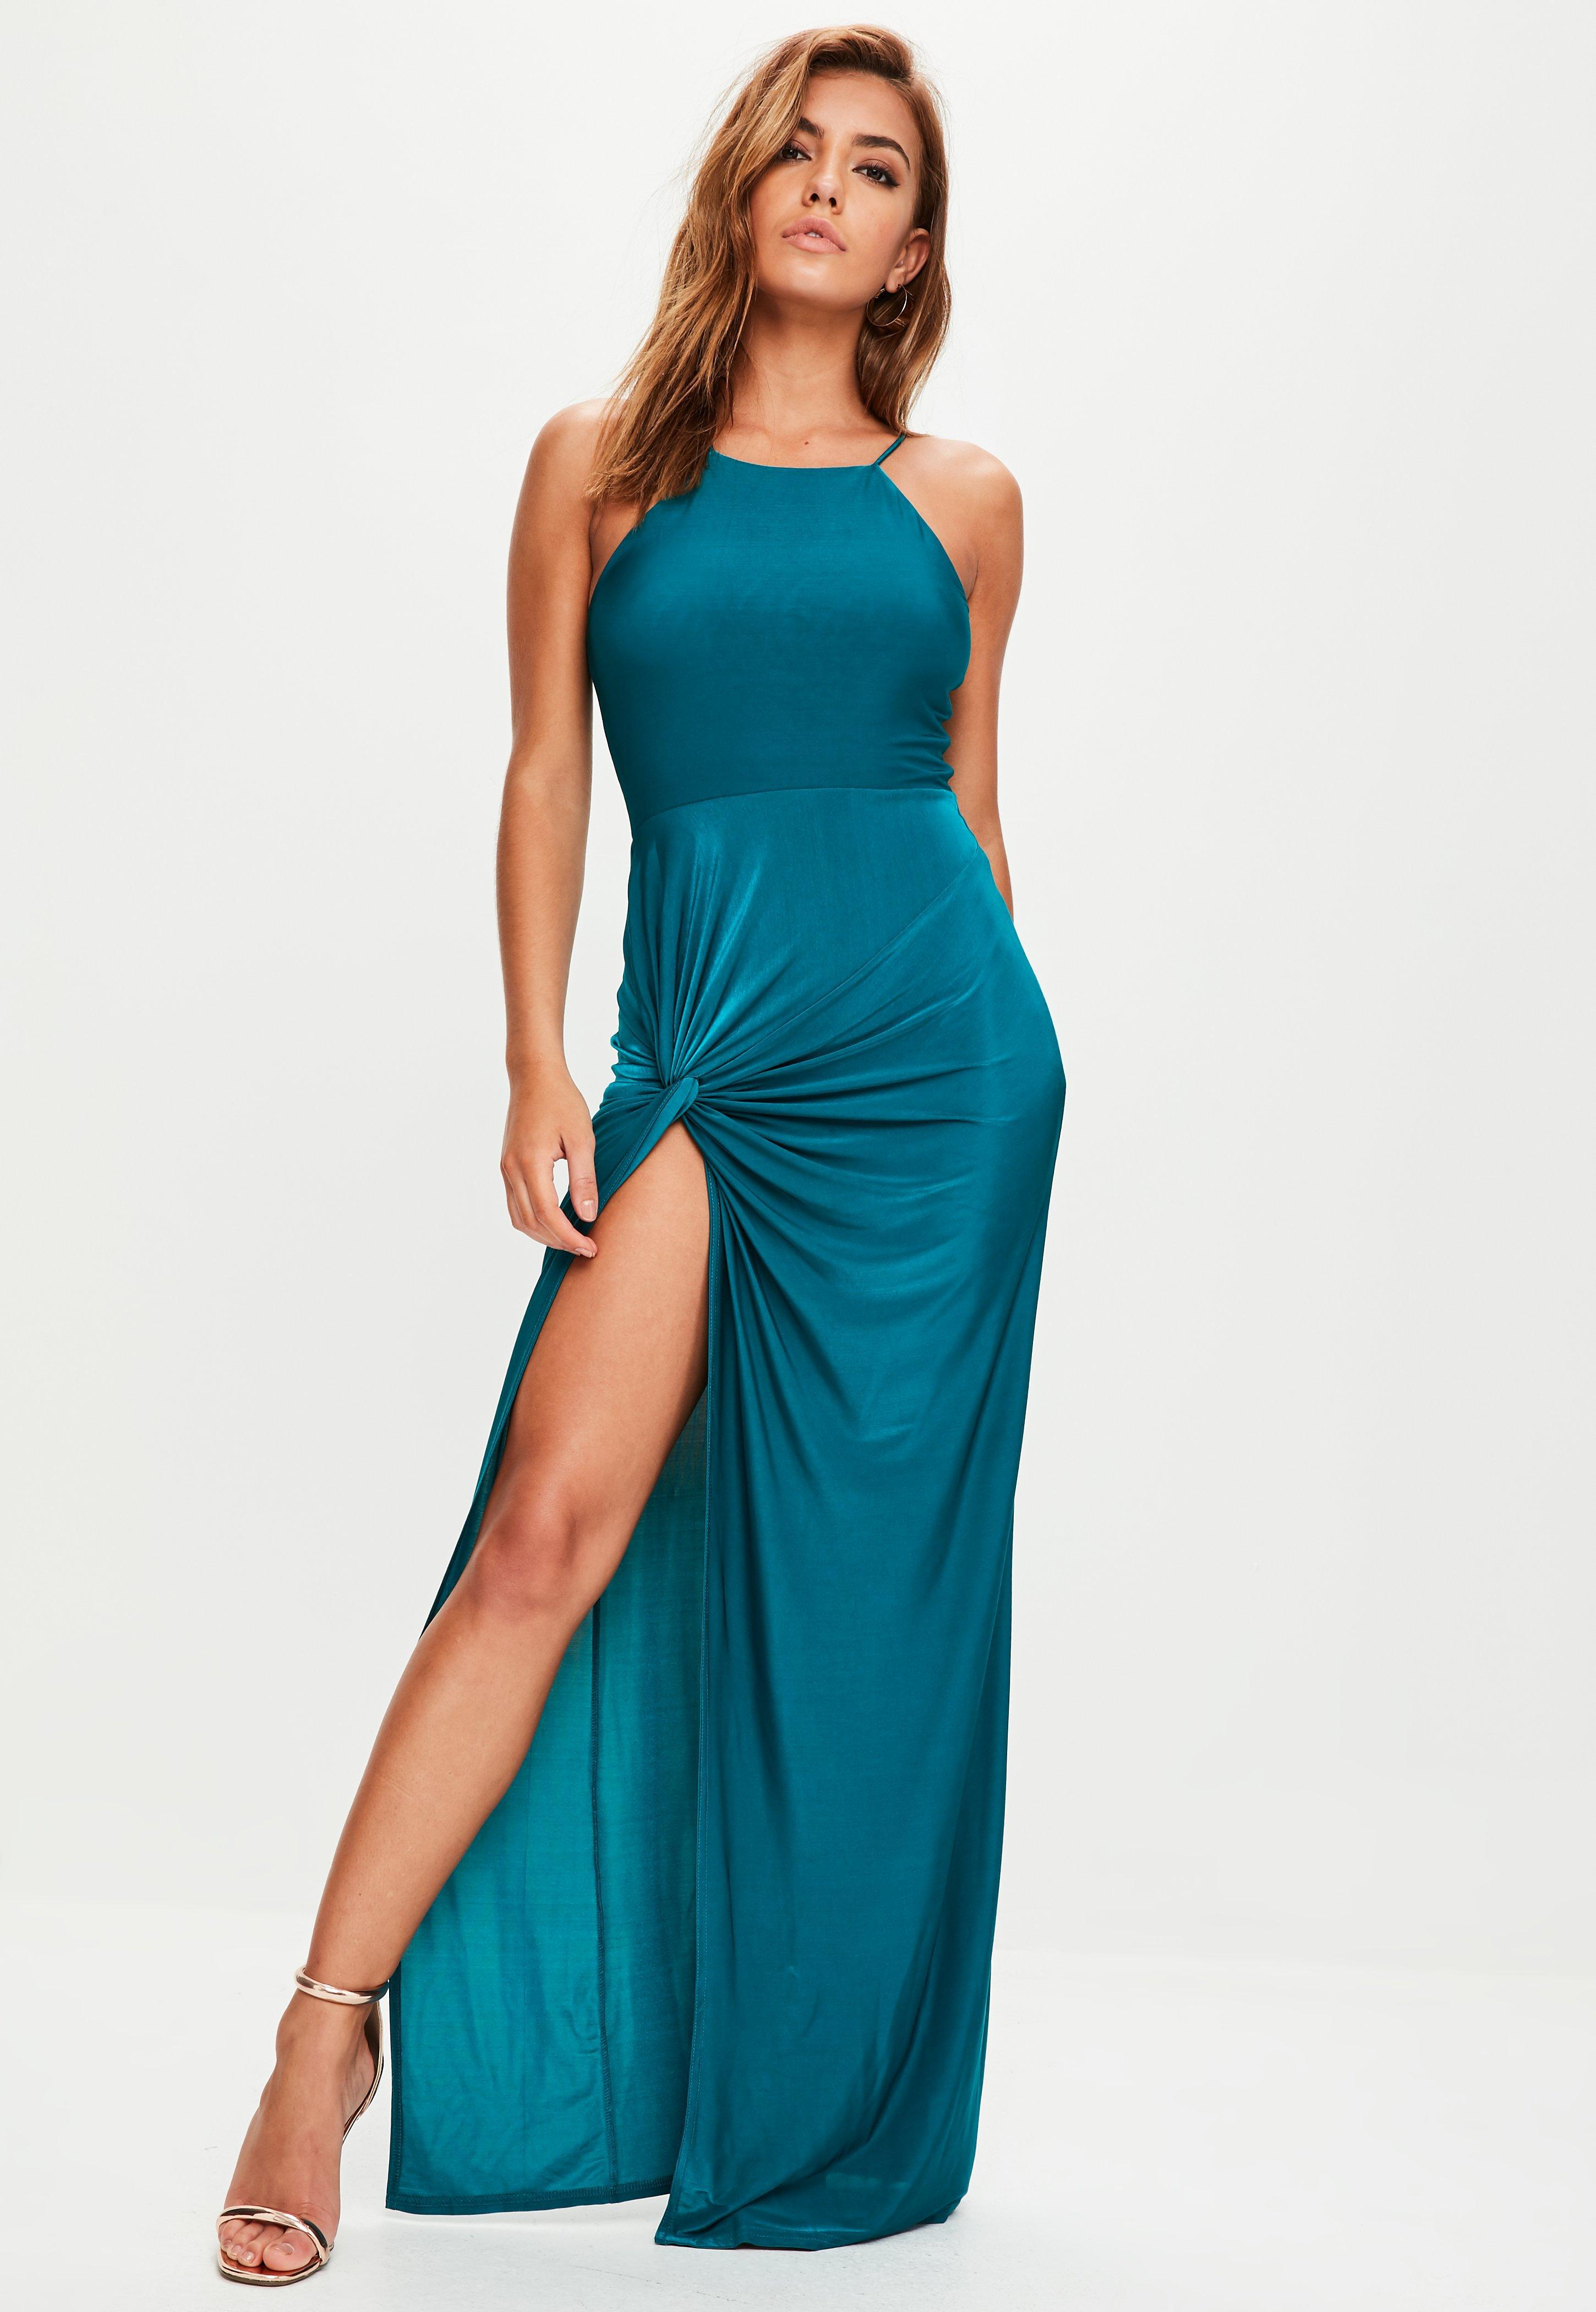 Lyst - Missguided Teal Blue Slinky Maxi Dress in Blue